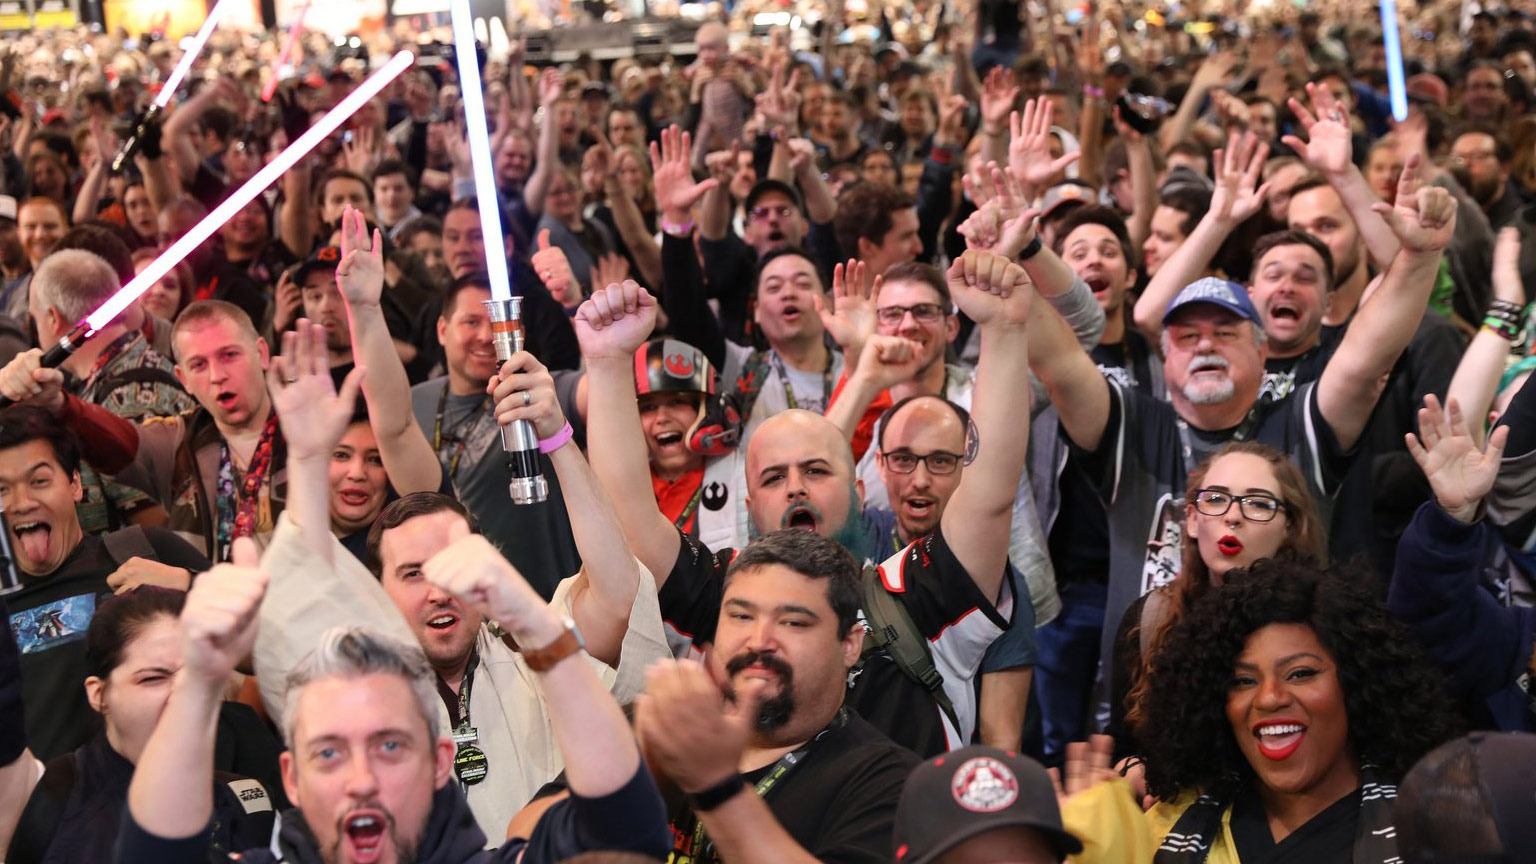 Cheering fans at Star Wars Celebration Chicago 2019.